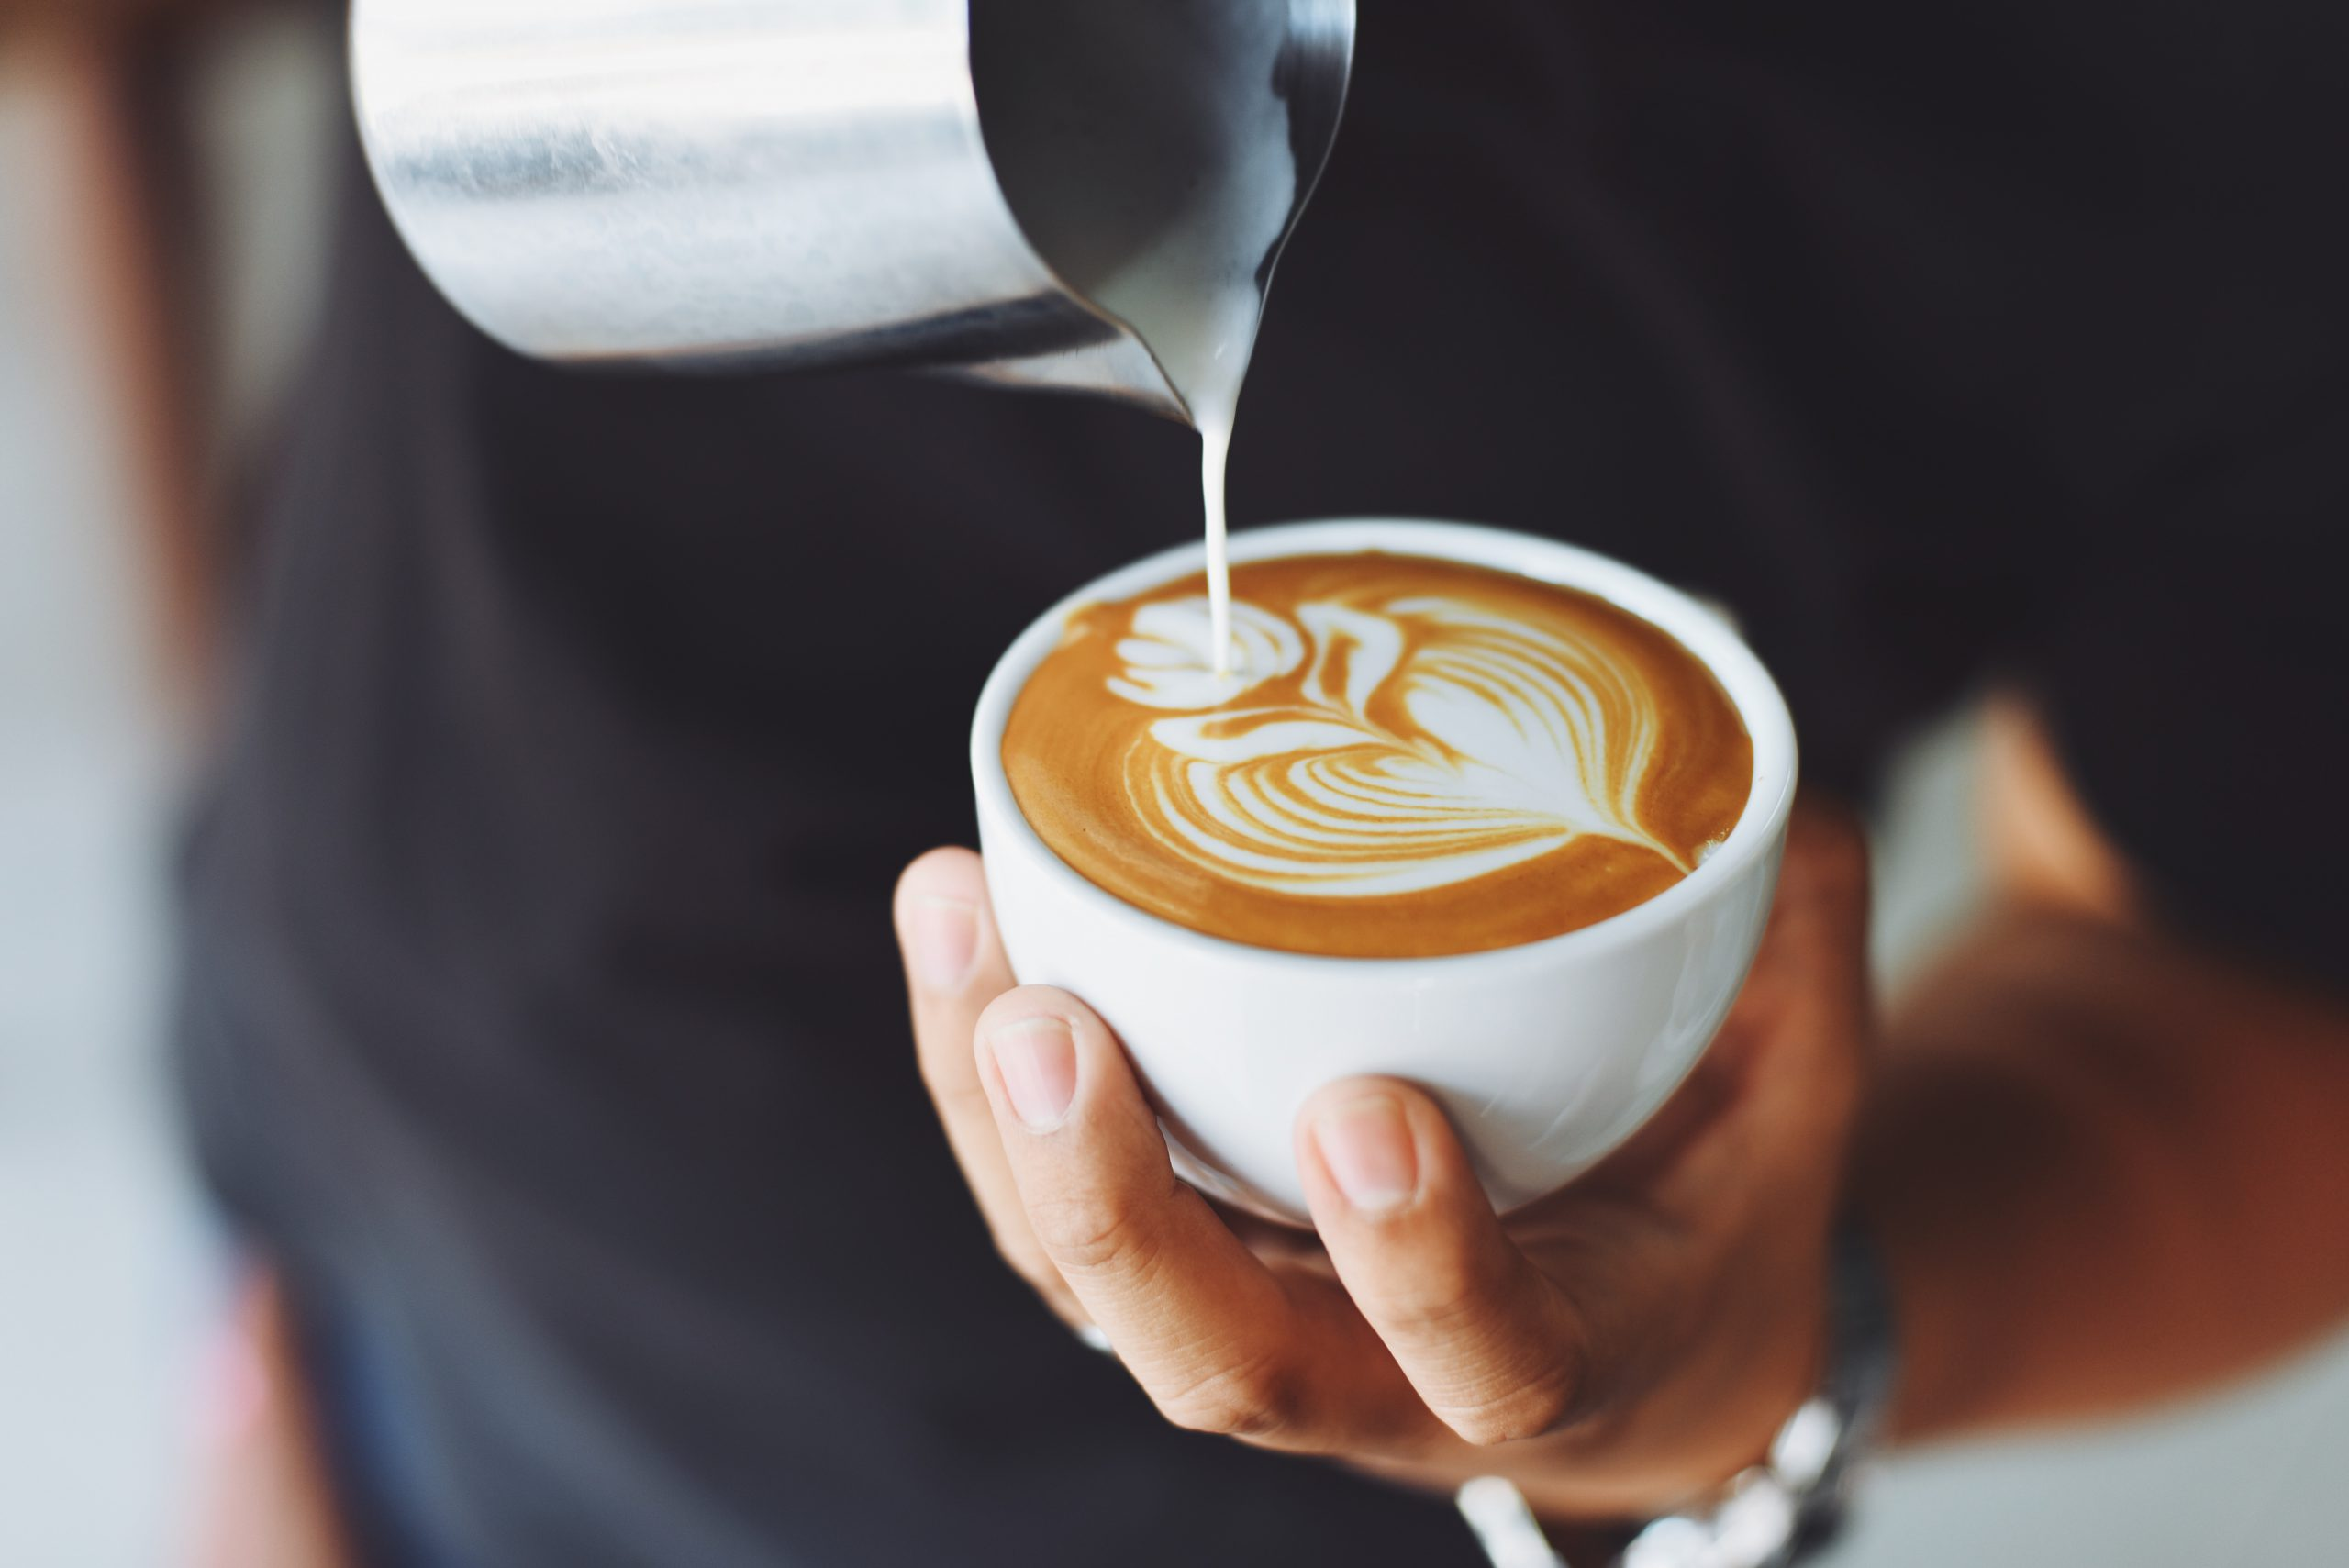 New Study: Coffee Protects Against Heart Disease